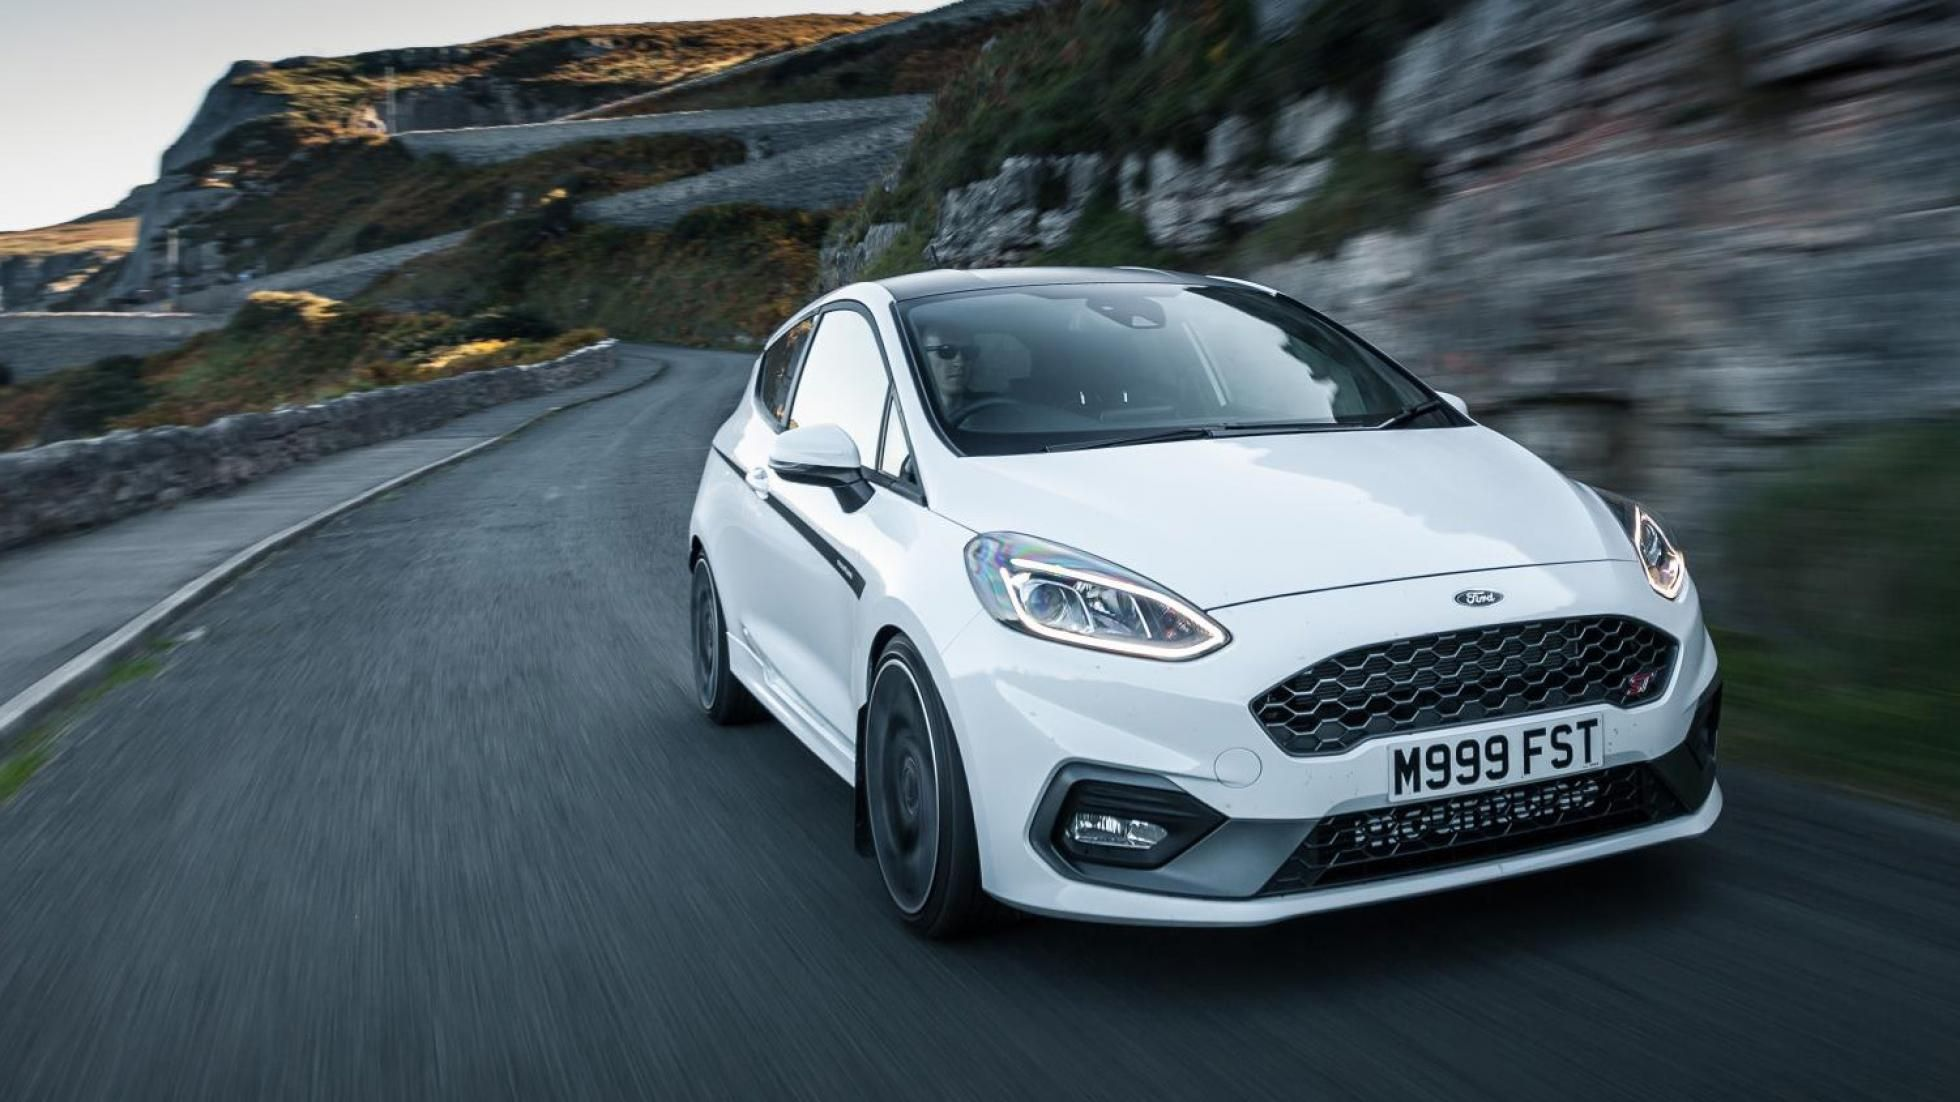 Mountune S Newest Kit Boosts The 2019 Ford Fiesta St S Output To 222 Horsepower Ford Fiesta St Ford Fiesta Fiesta St